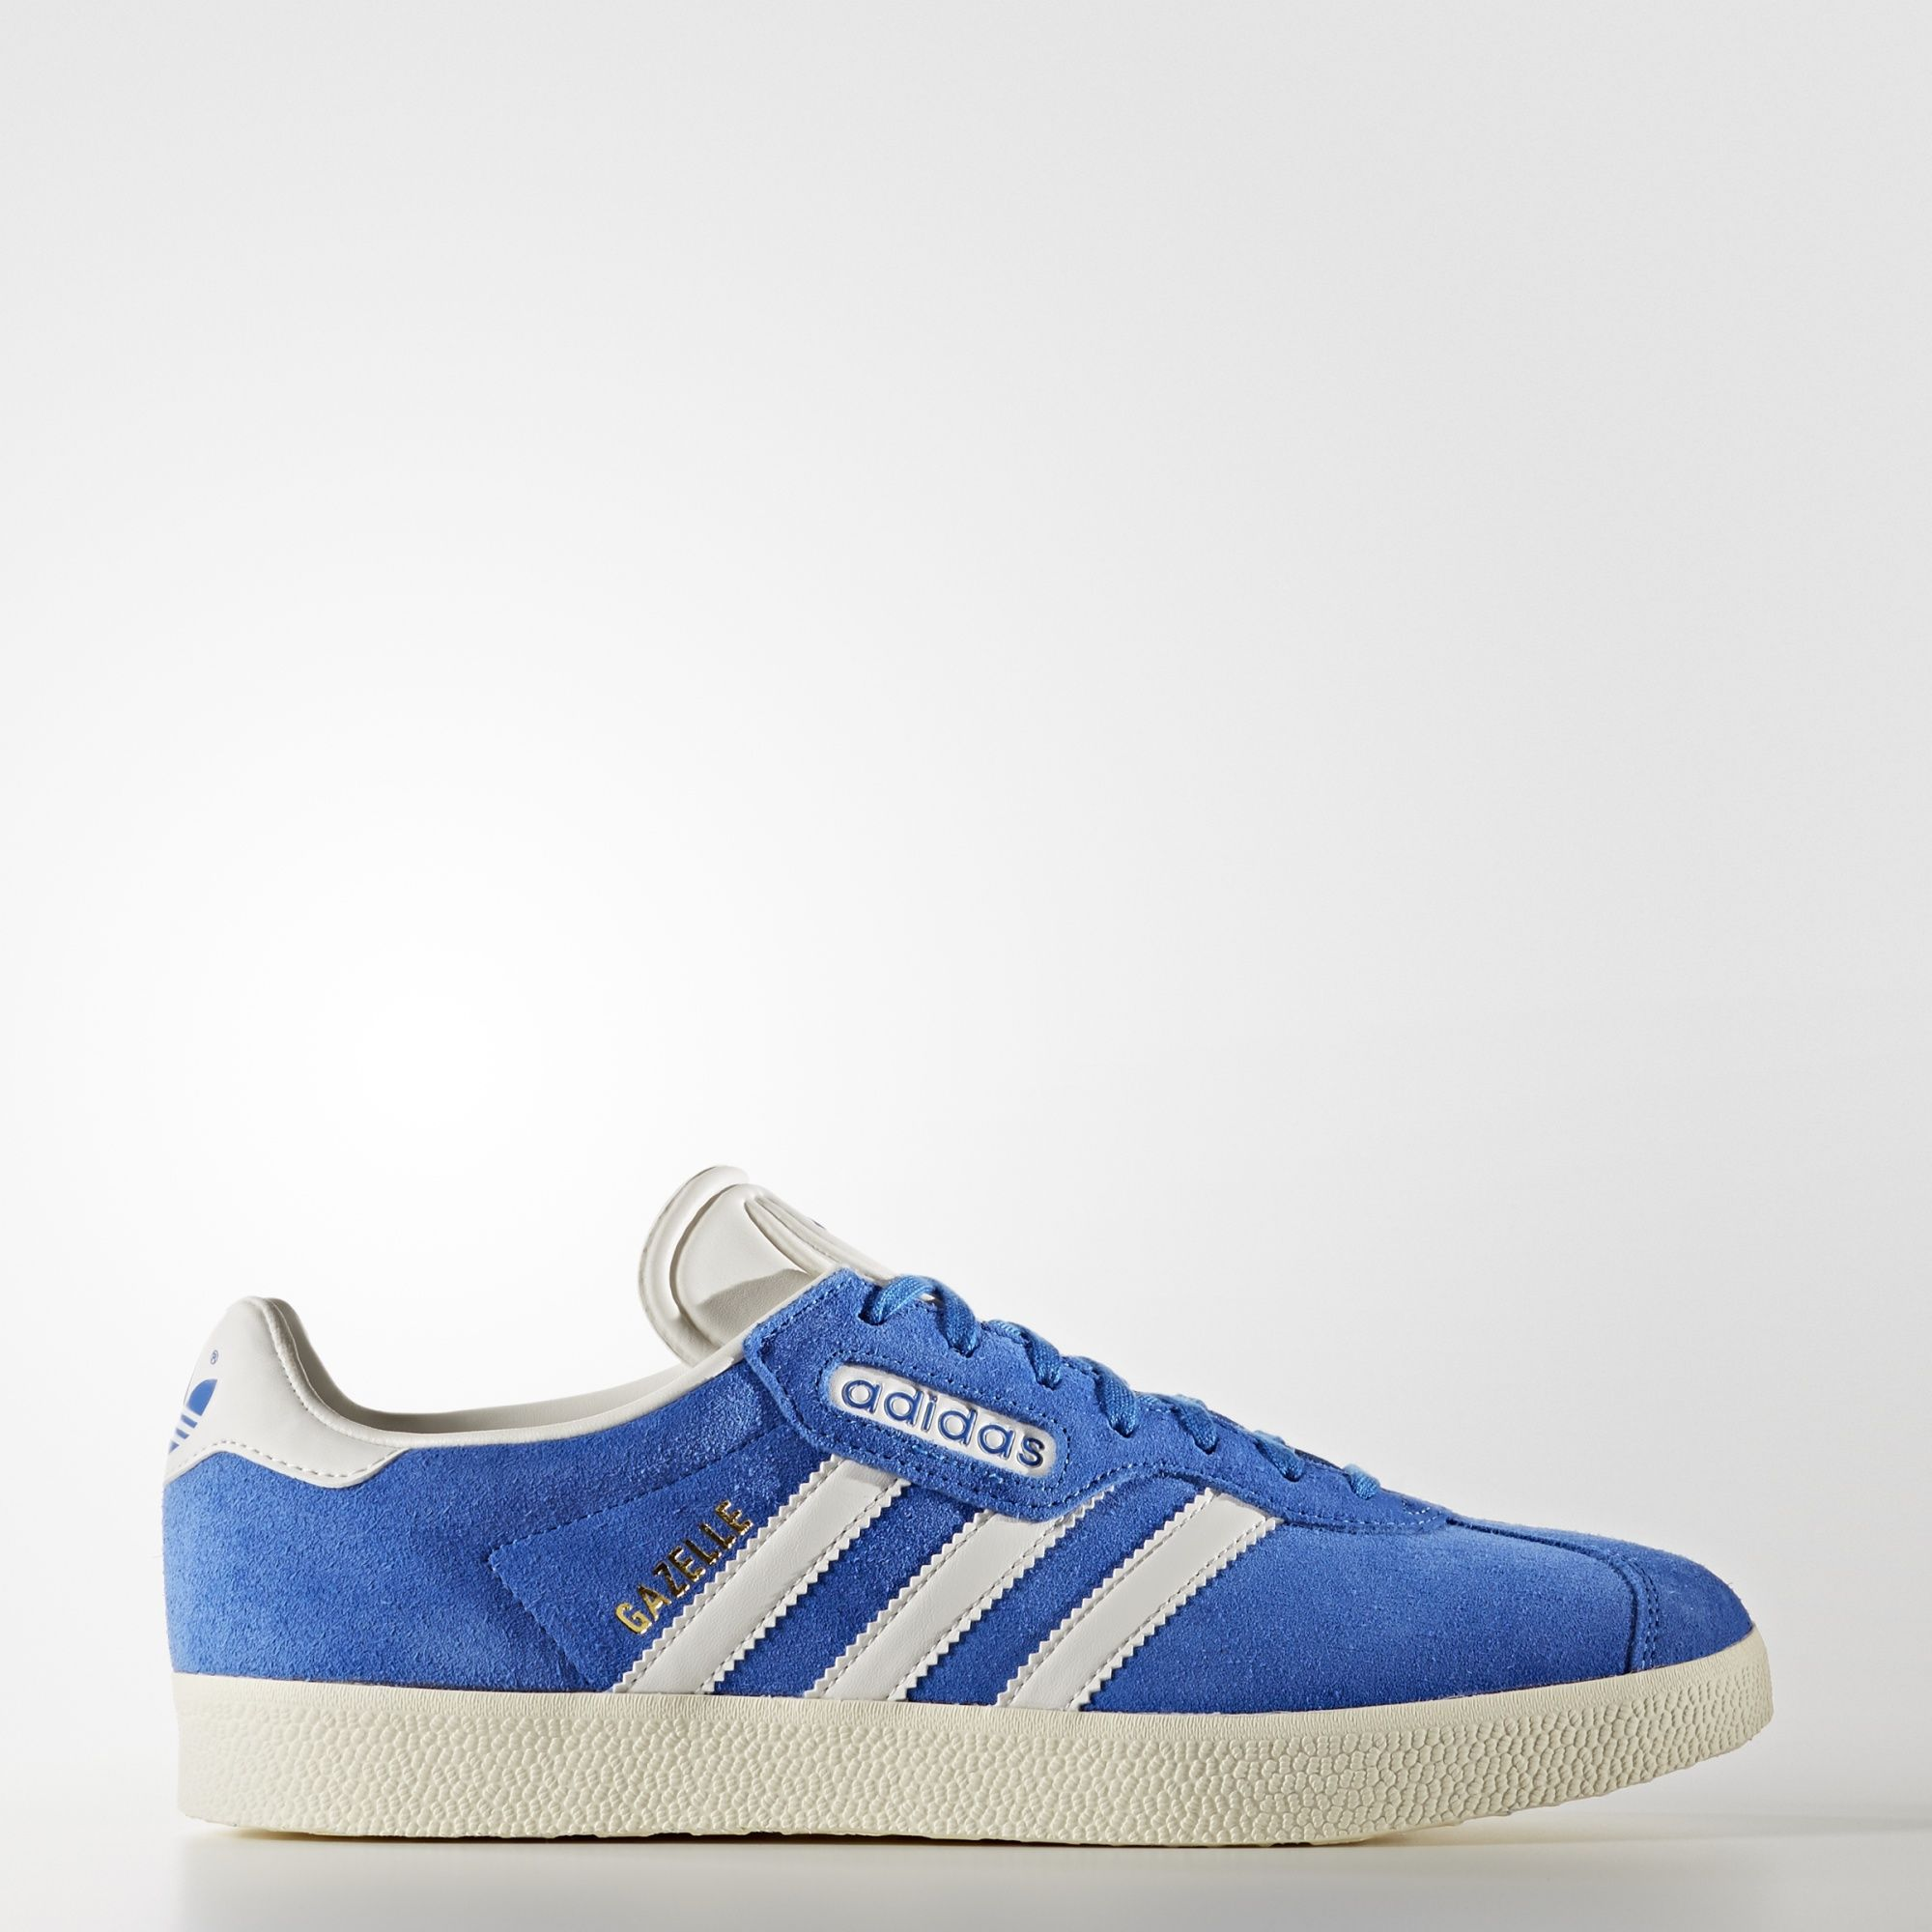 Mens Neighborhood X Adidas Gazelle Shoes Midnight NavyDark BlueWhite Top Deals